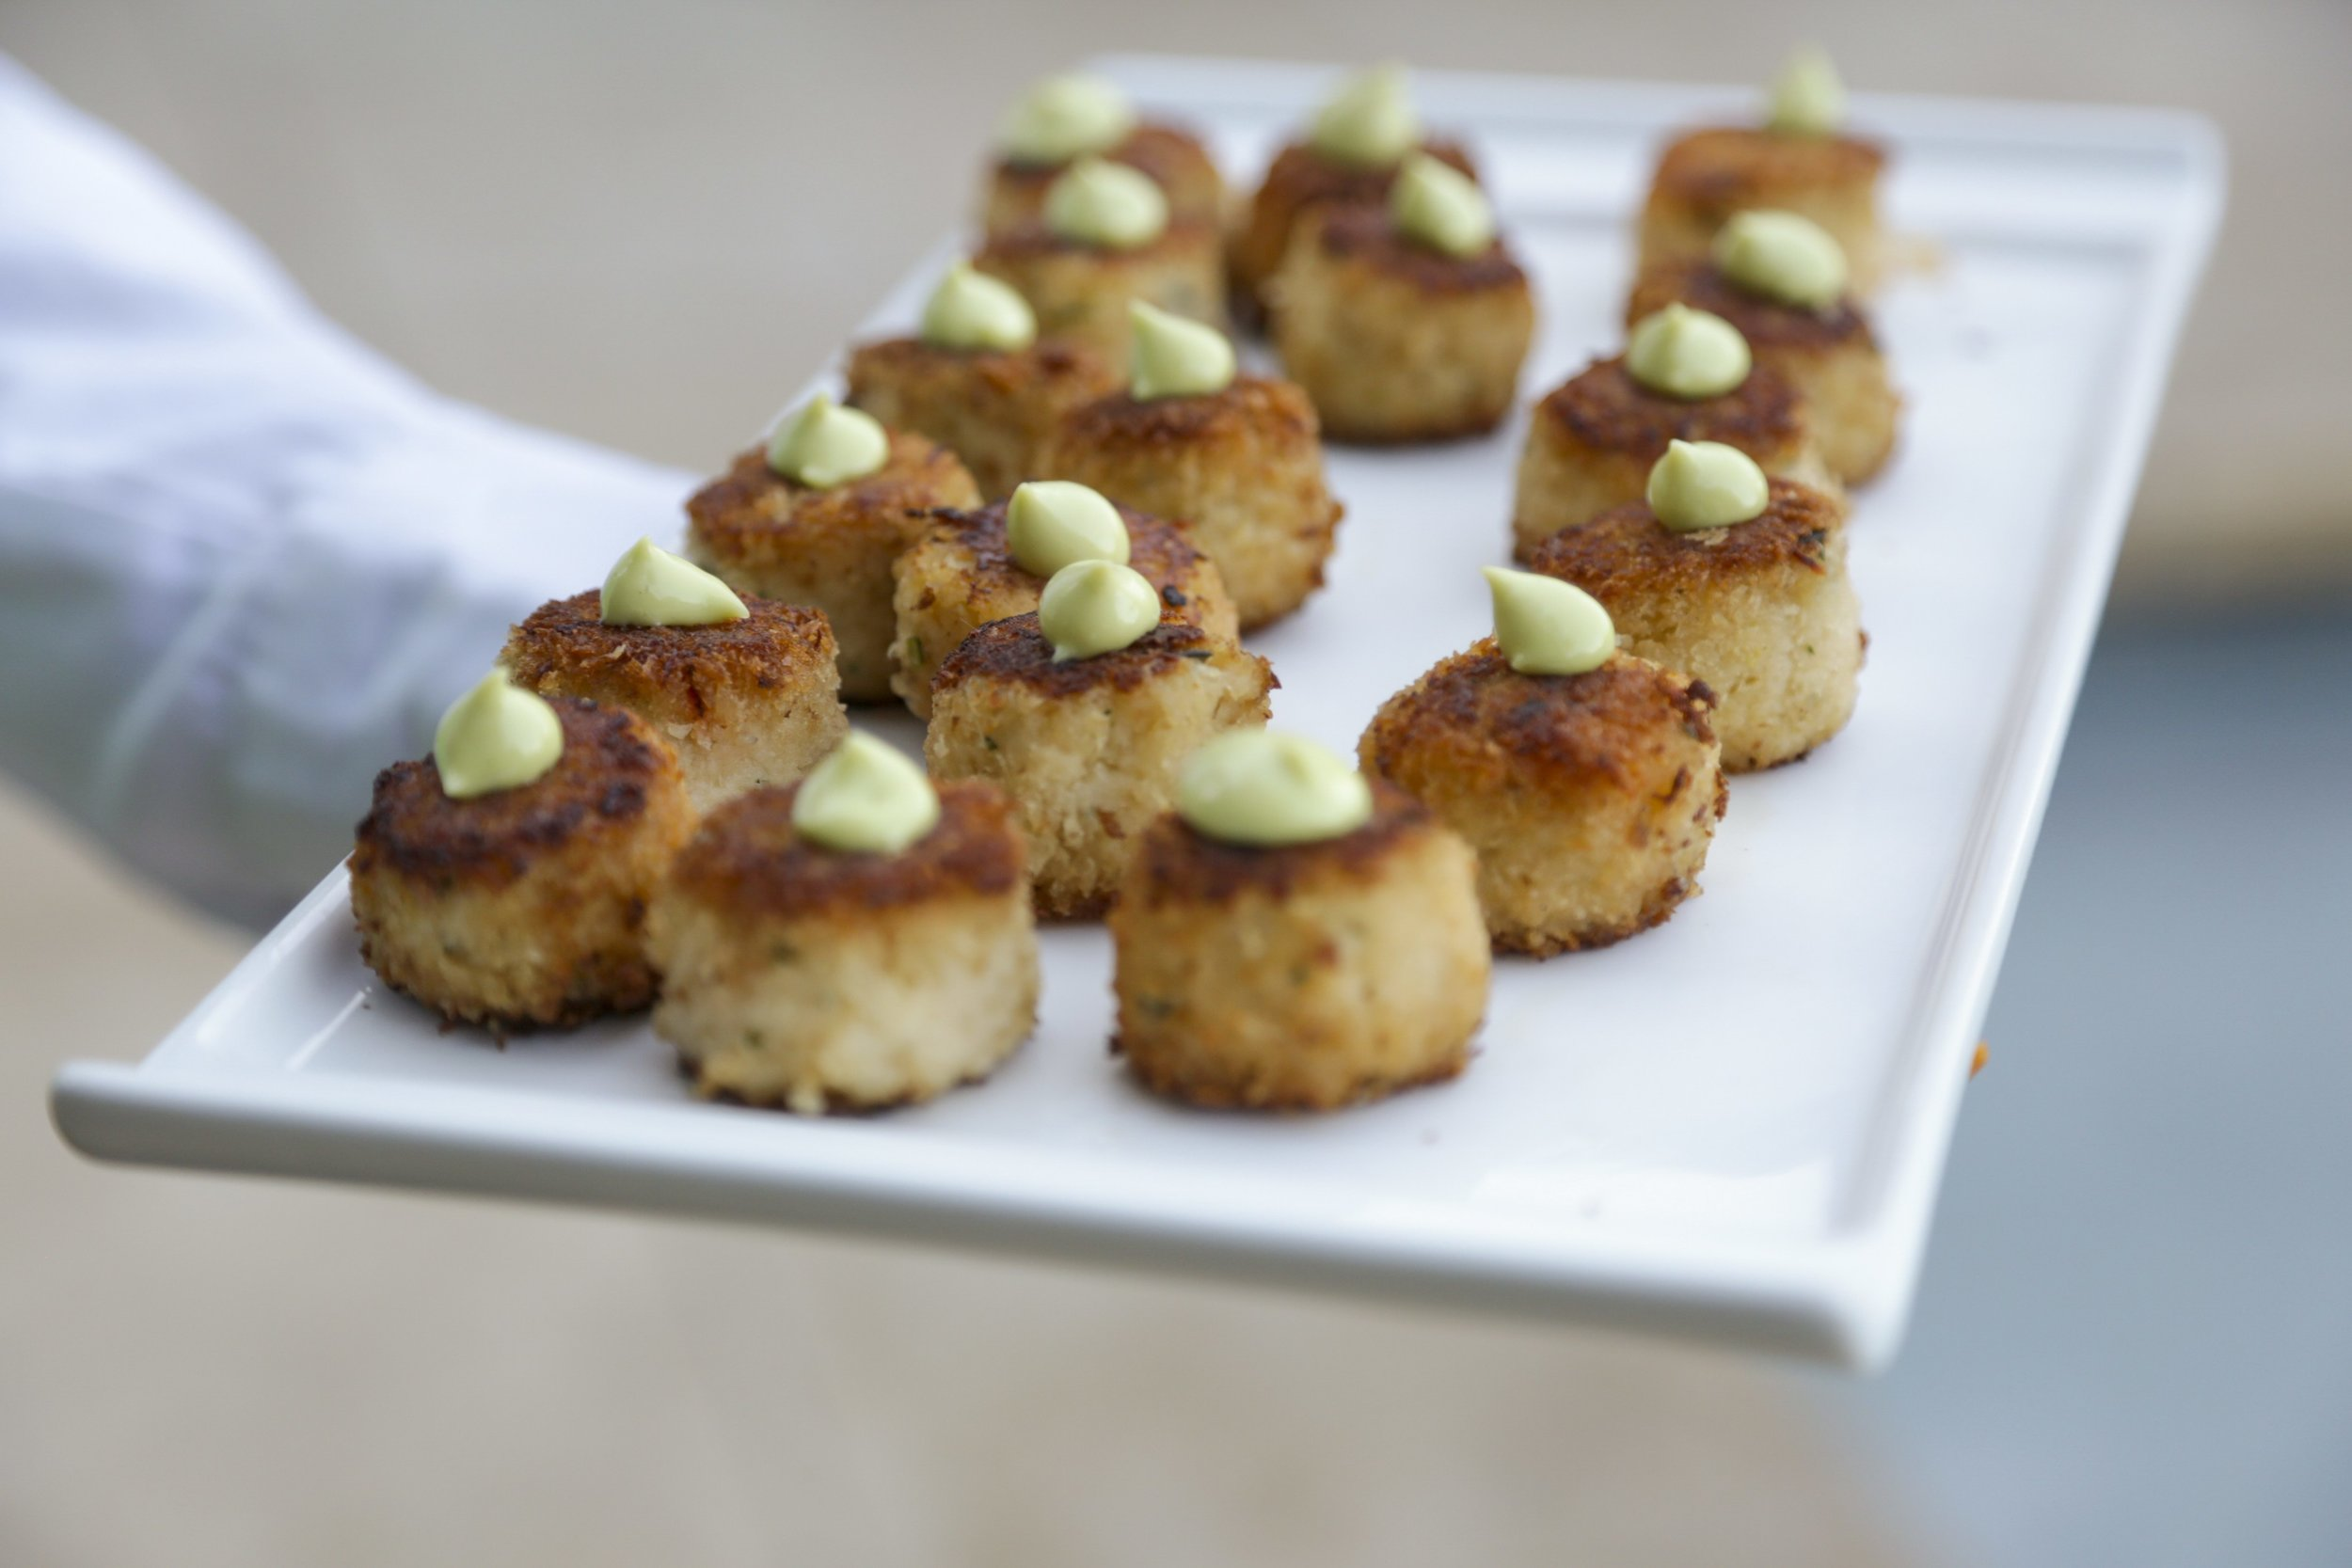 Miniature Dungeness Crab Cakes